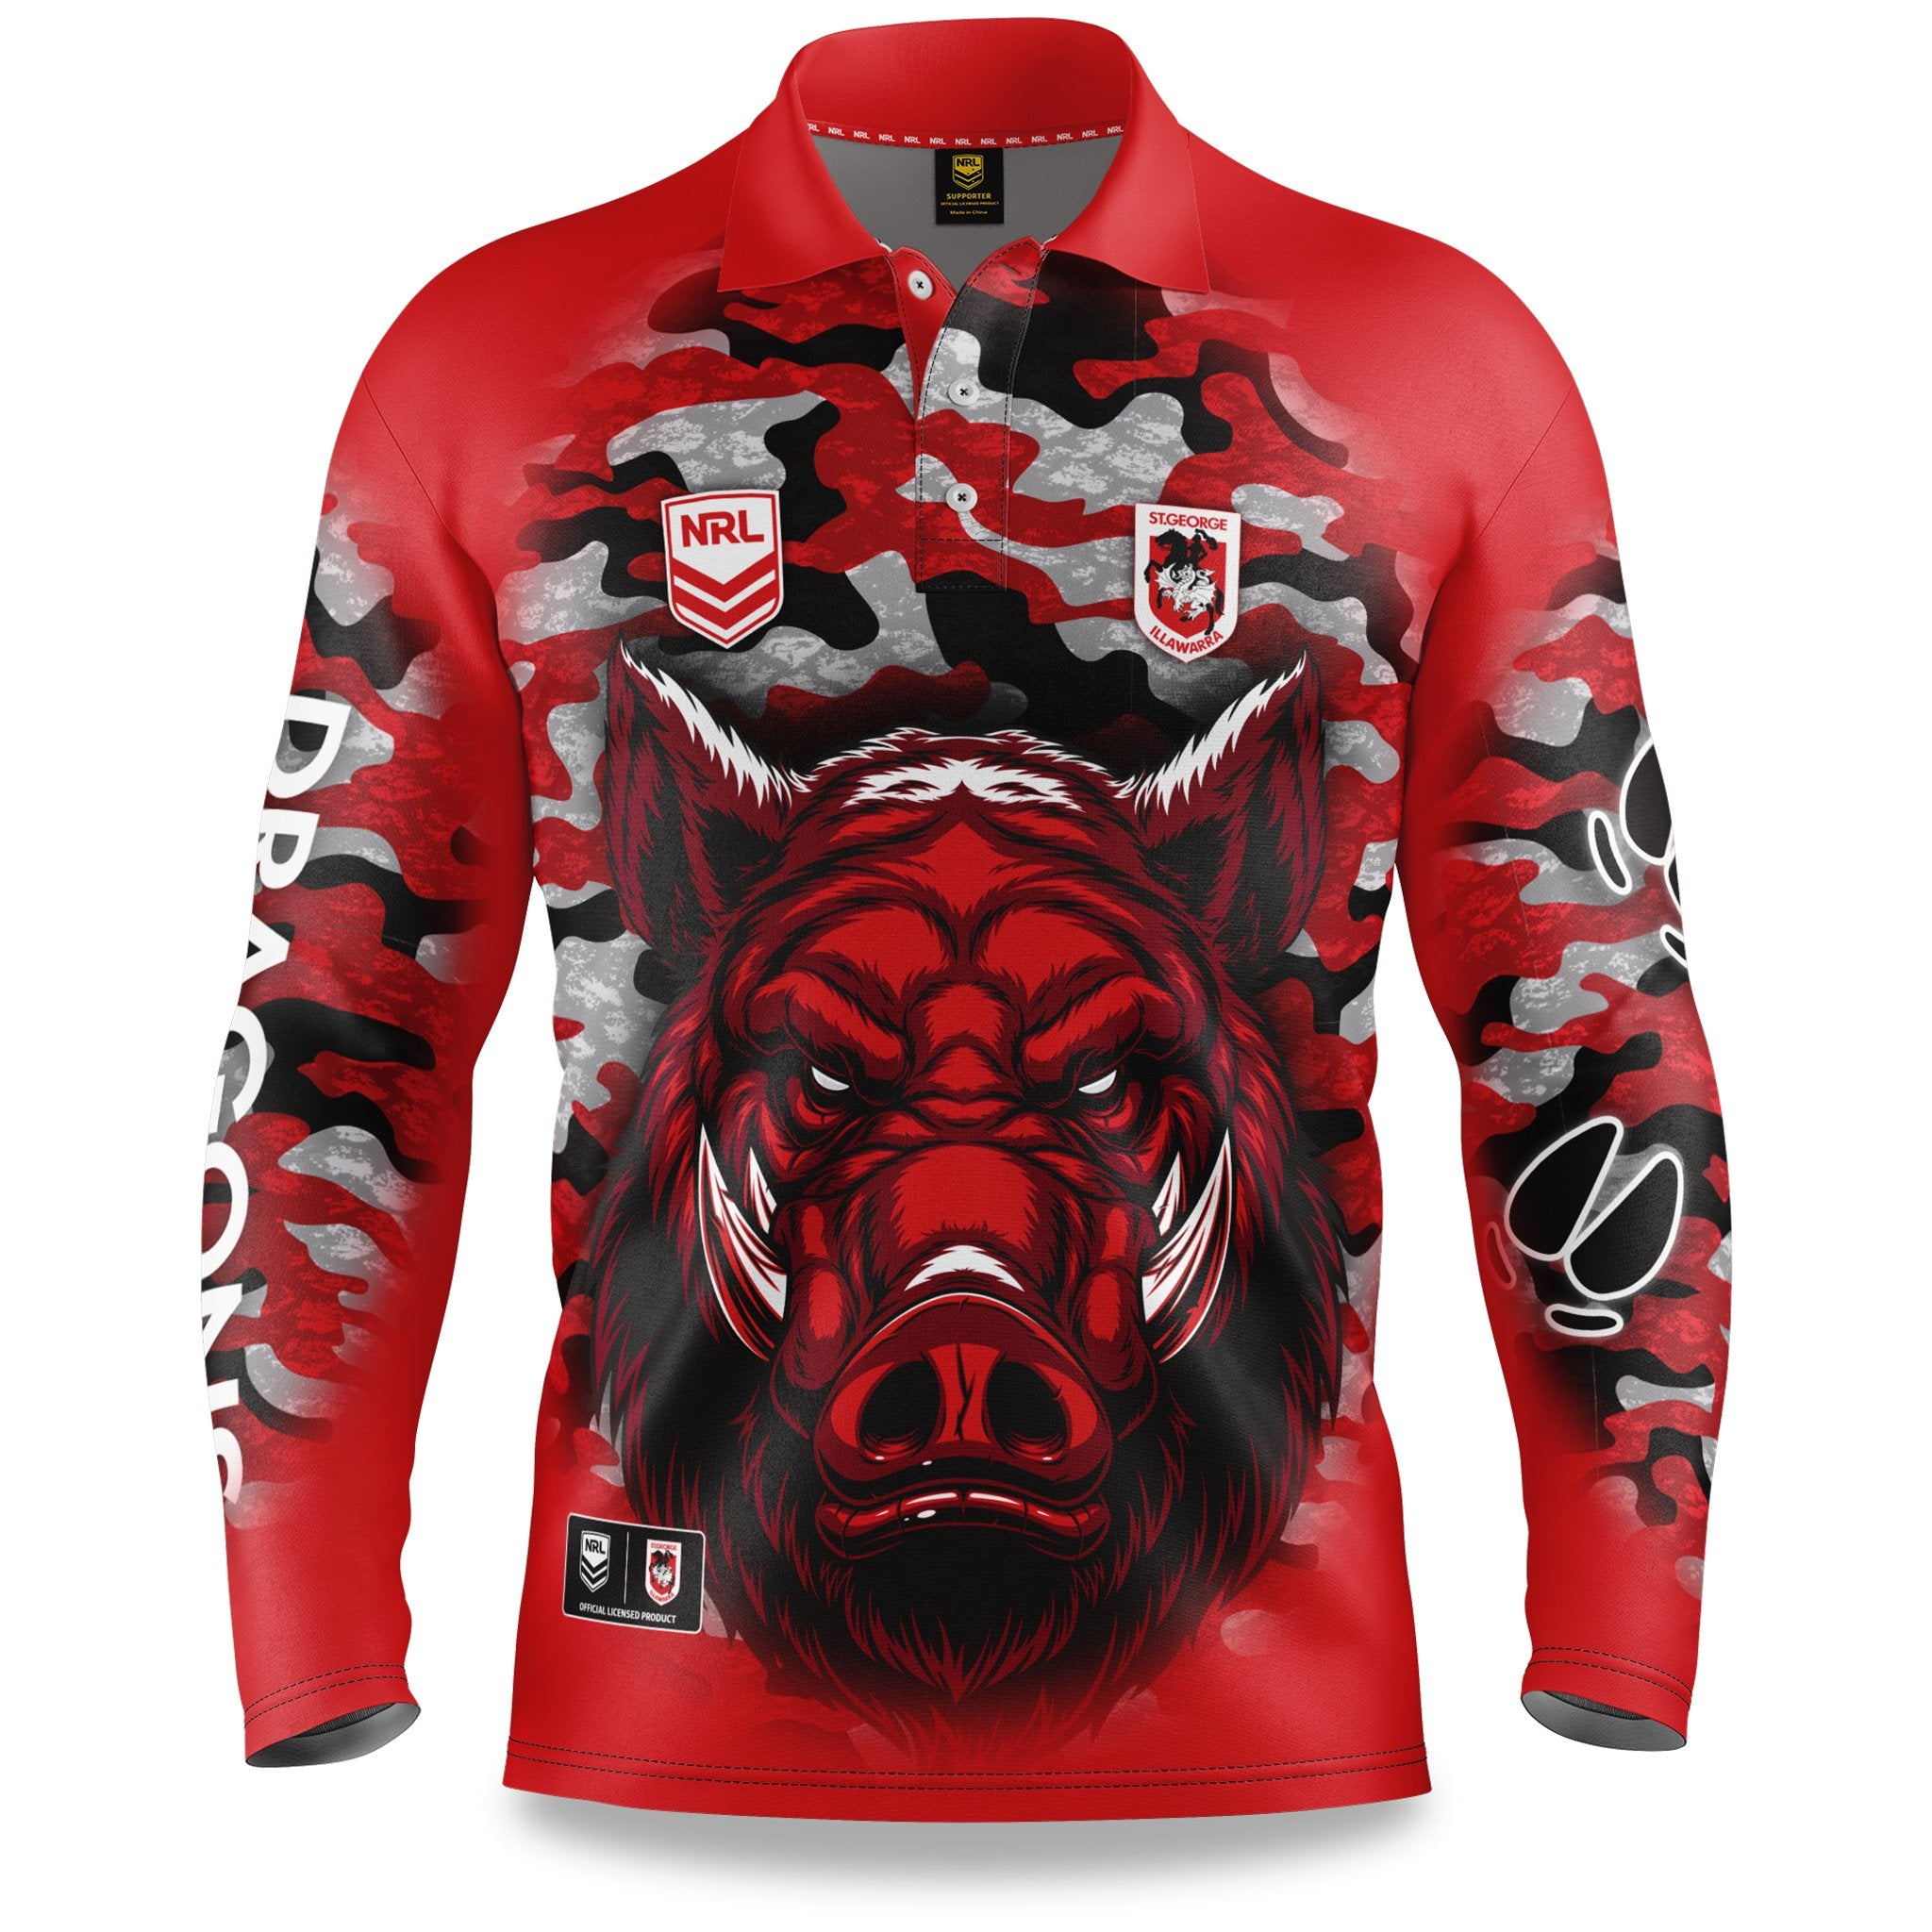 Outback Shirt NRL Dragons 20